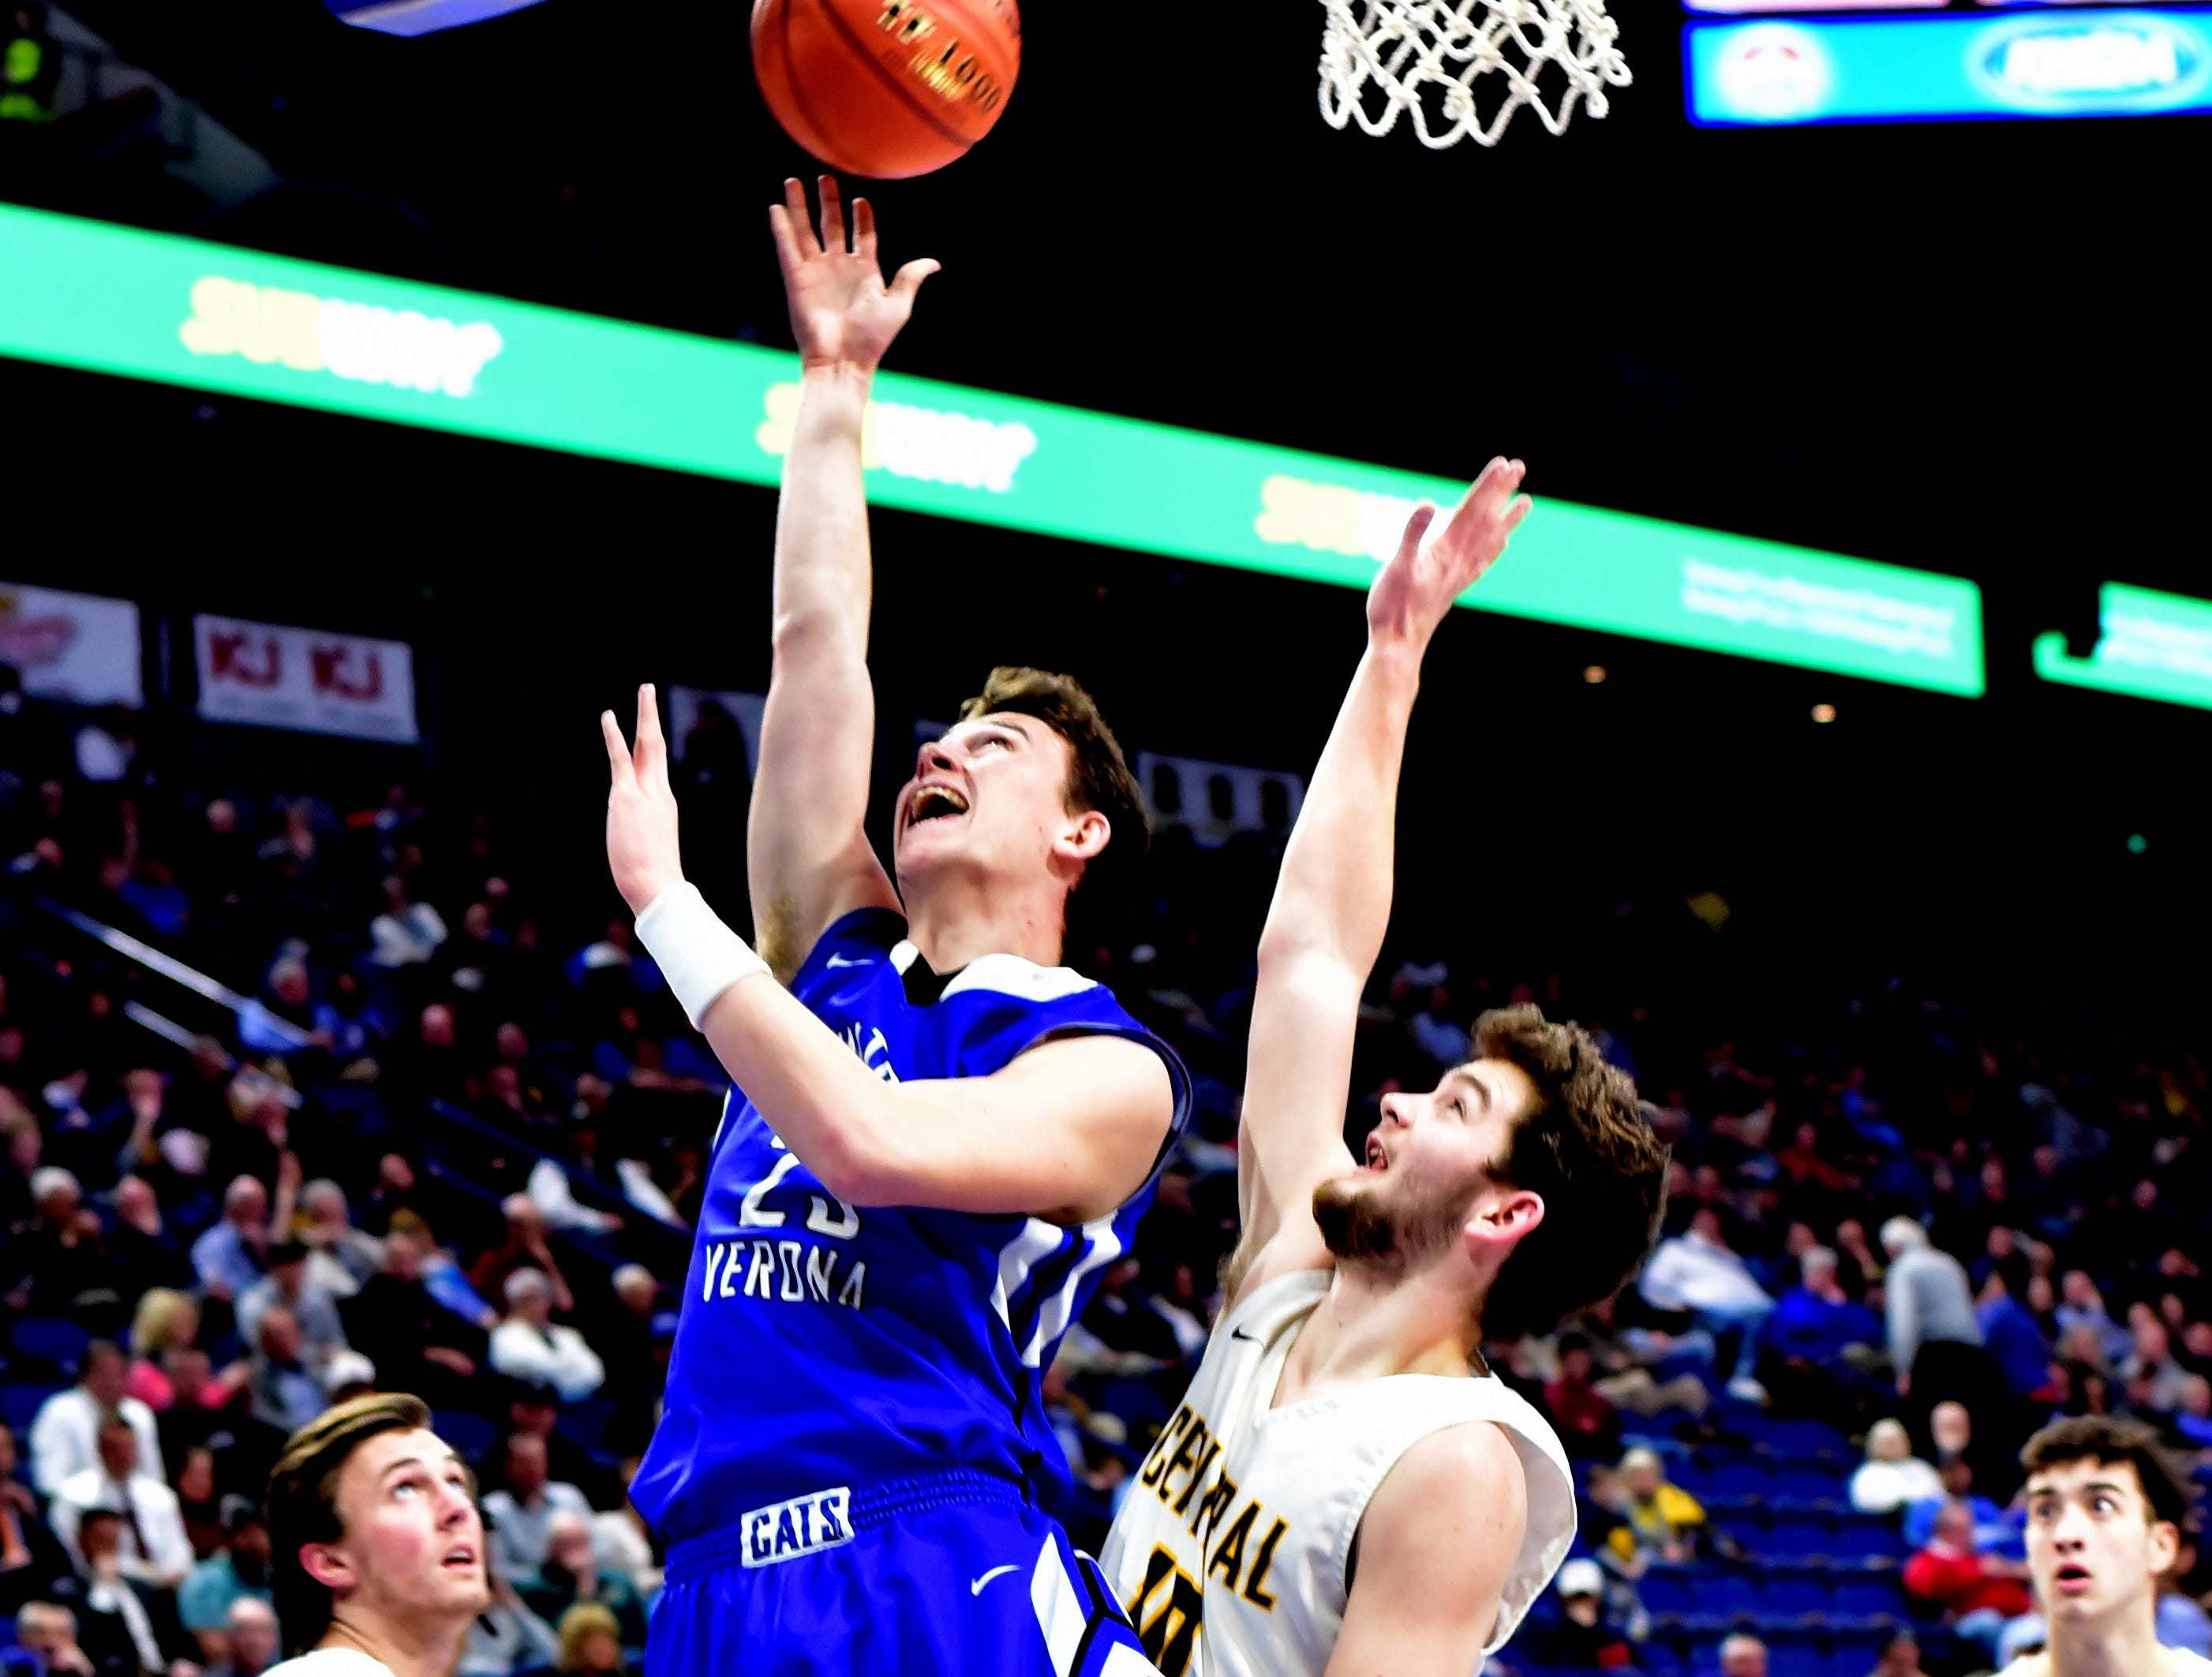 Walton Verona's Bradt Smithers (23) puts back an offensive rebound for points at the KHSAA Sweet 16 Tournament at Rupp Arena in Lexington, KY, March 6, 2019